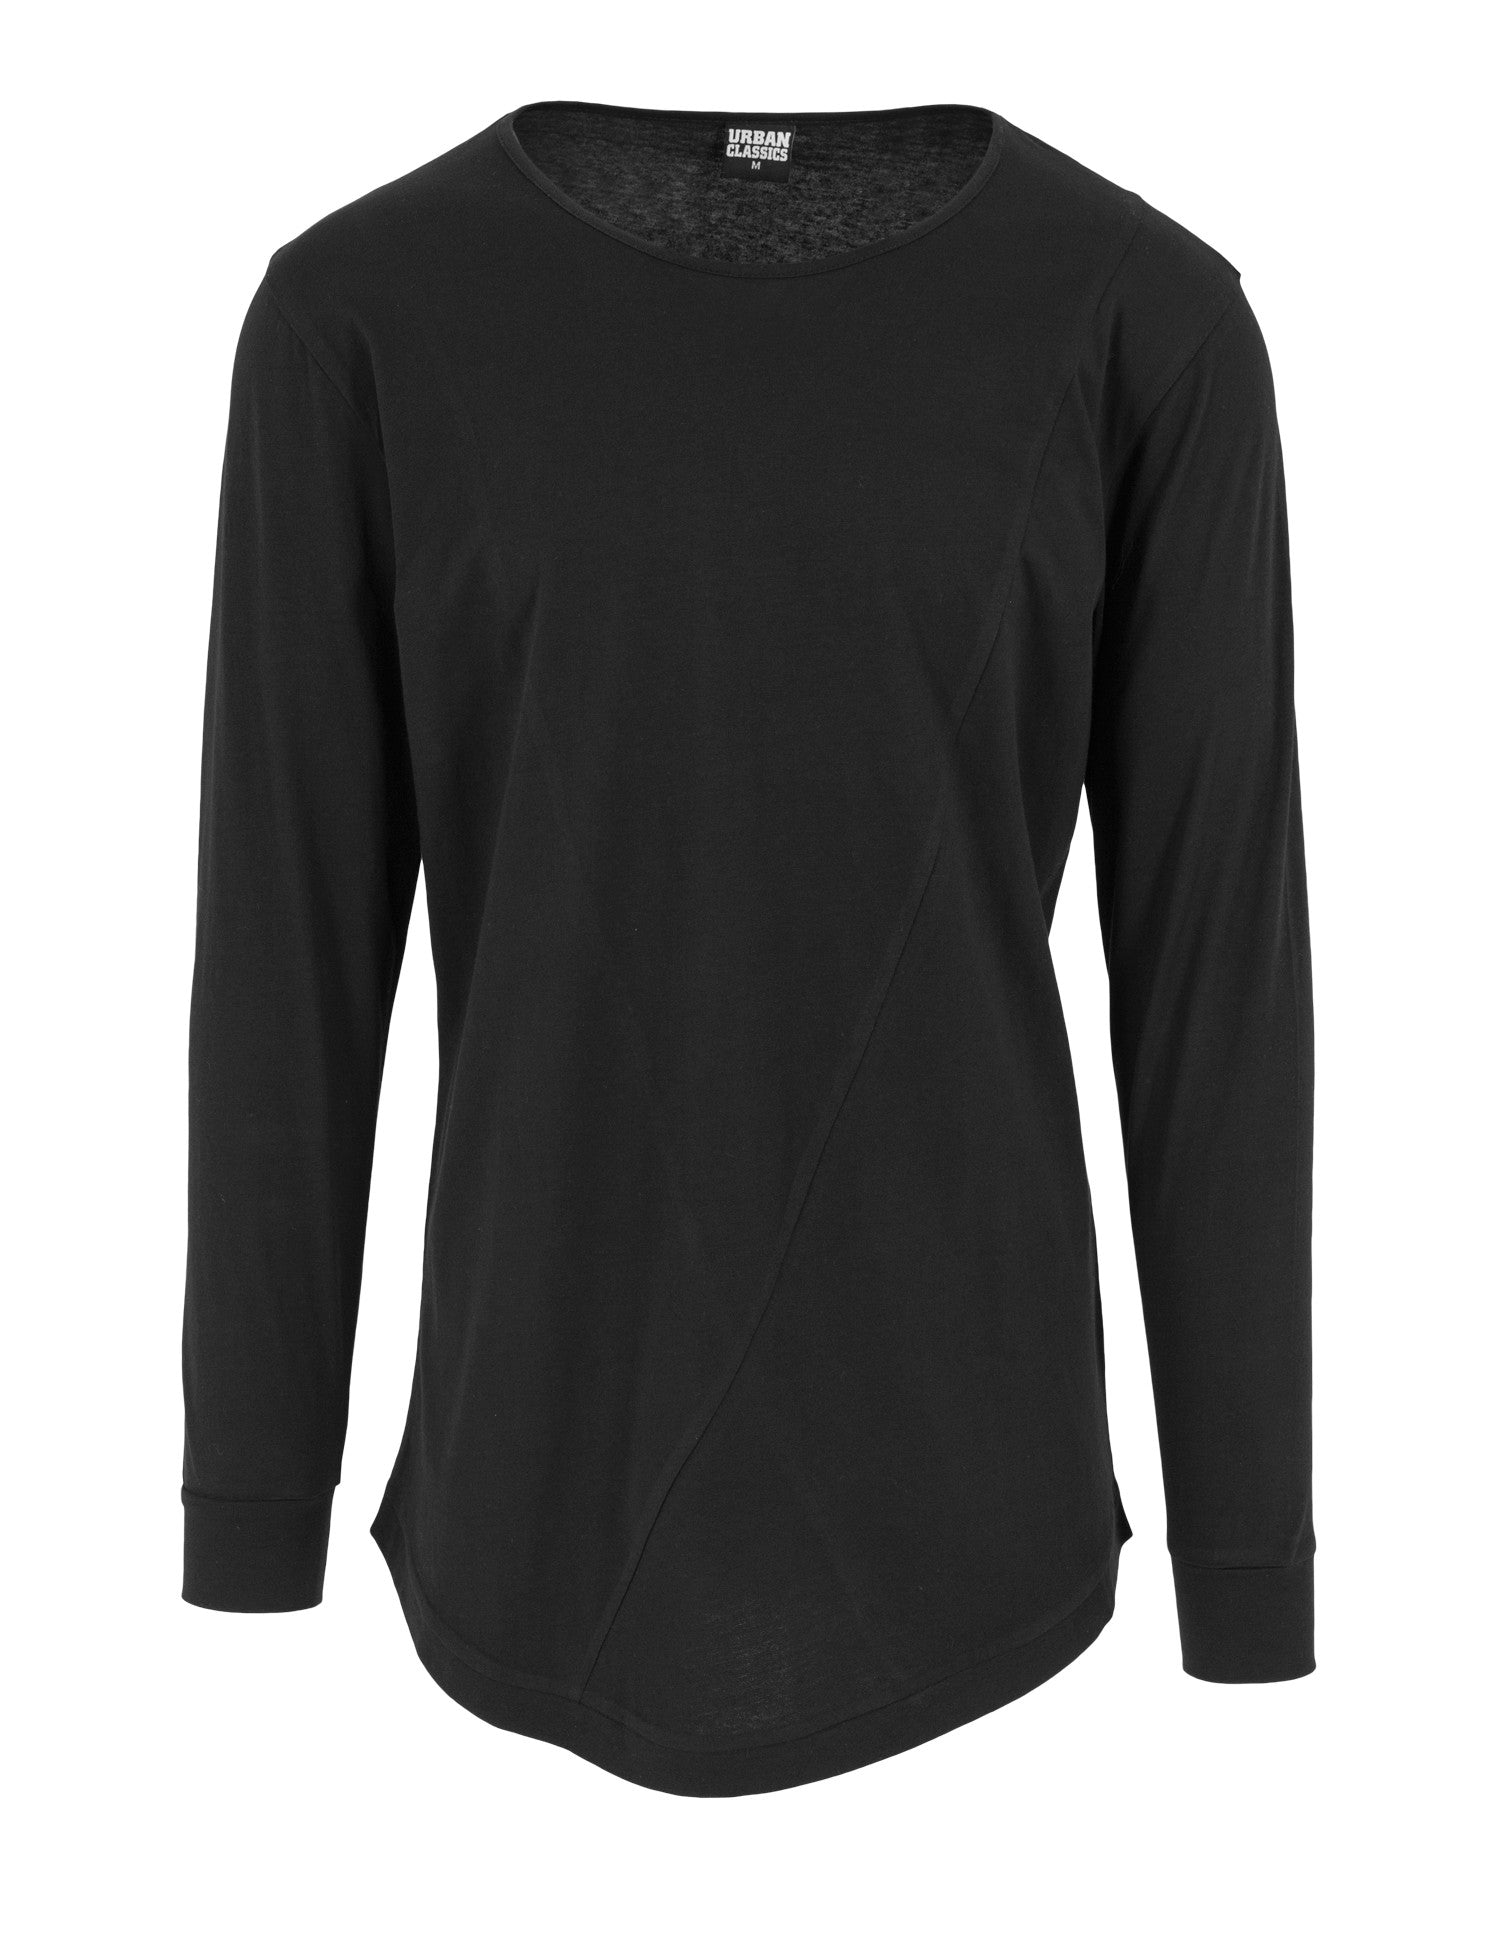 Long Shaped Fashion L/S Tee TB1101 Black